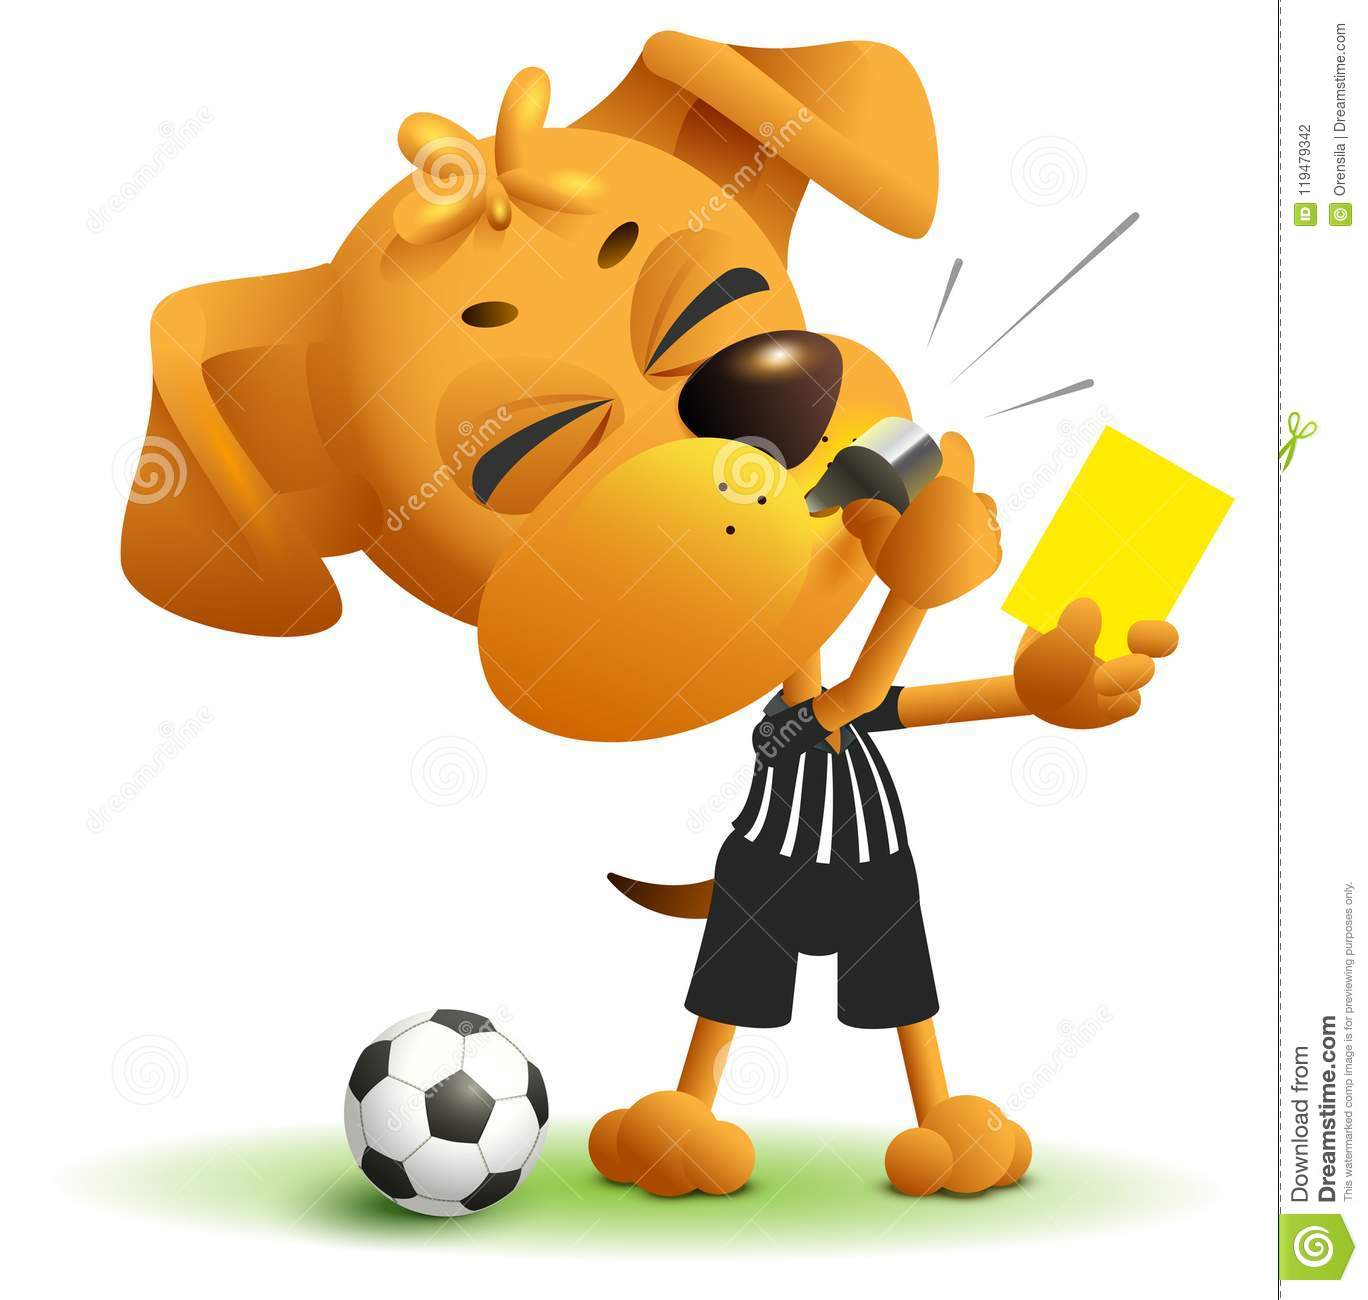 Referee dog shows yellow card. Violation of rules when playing soccer